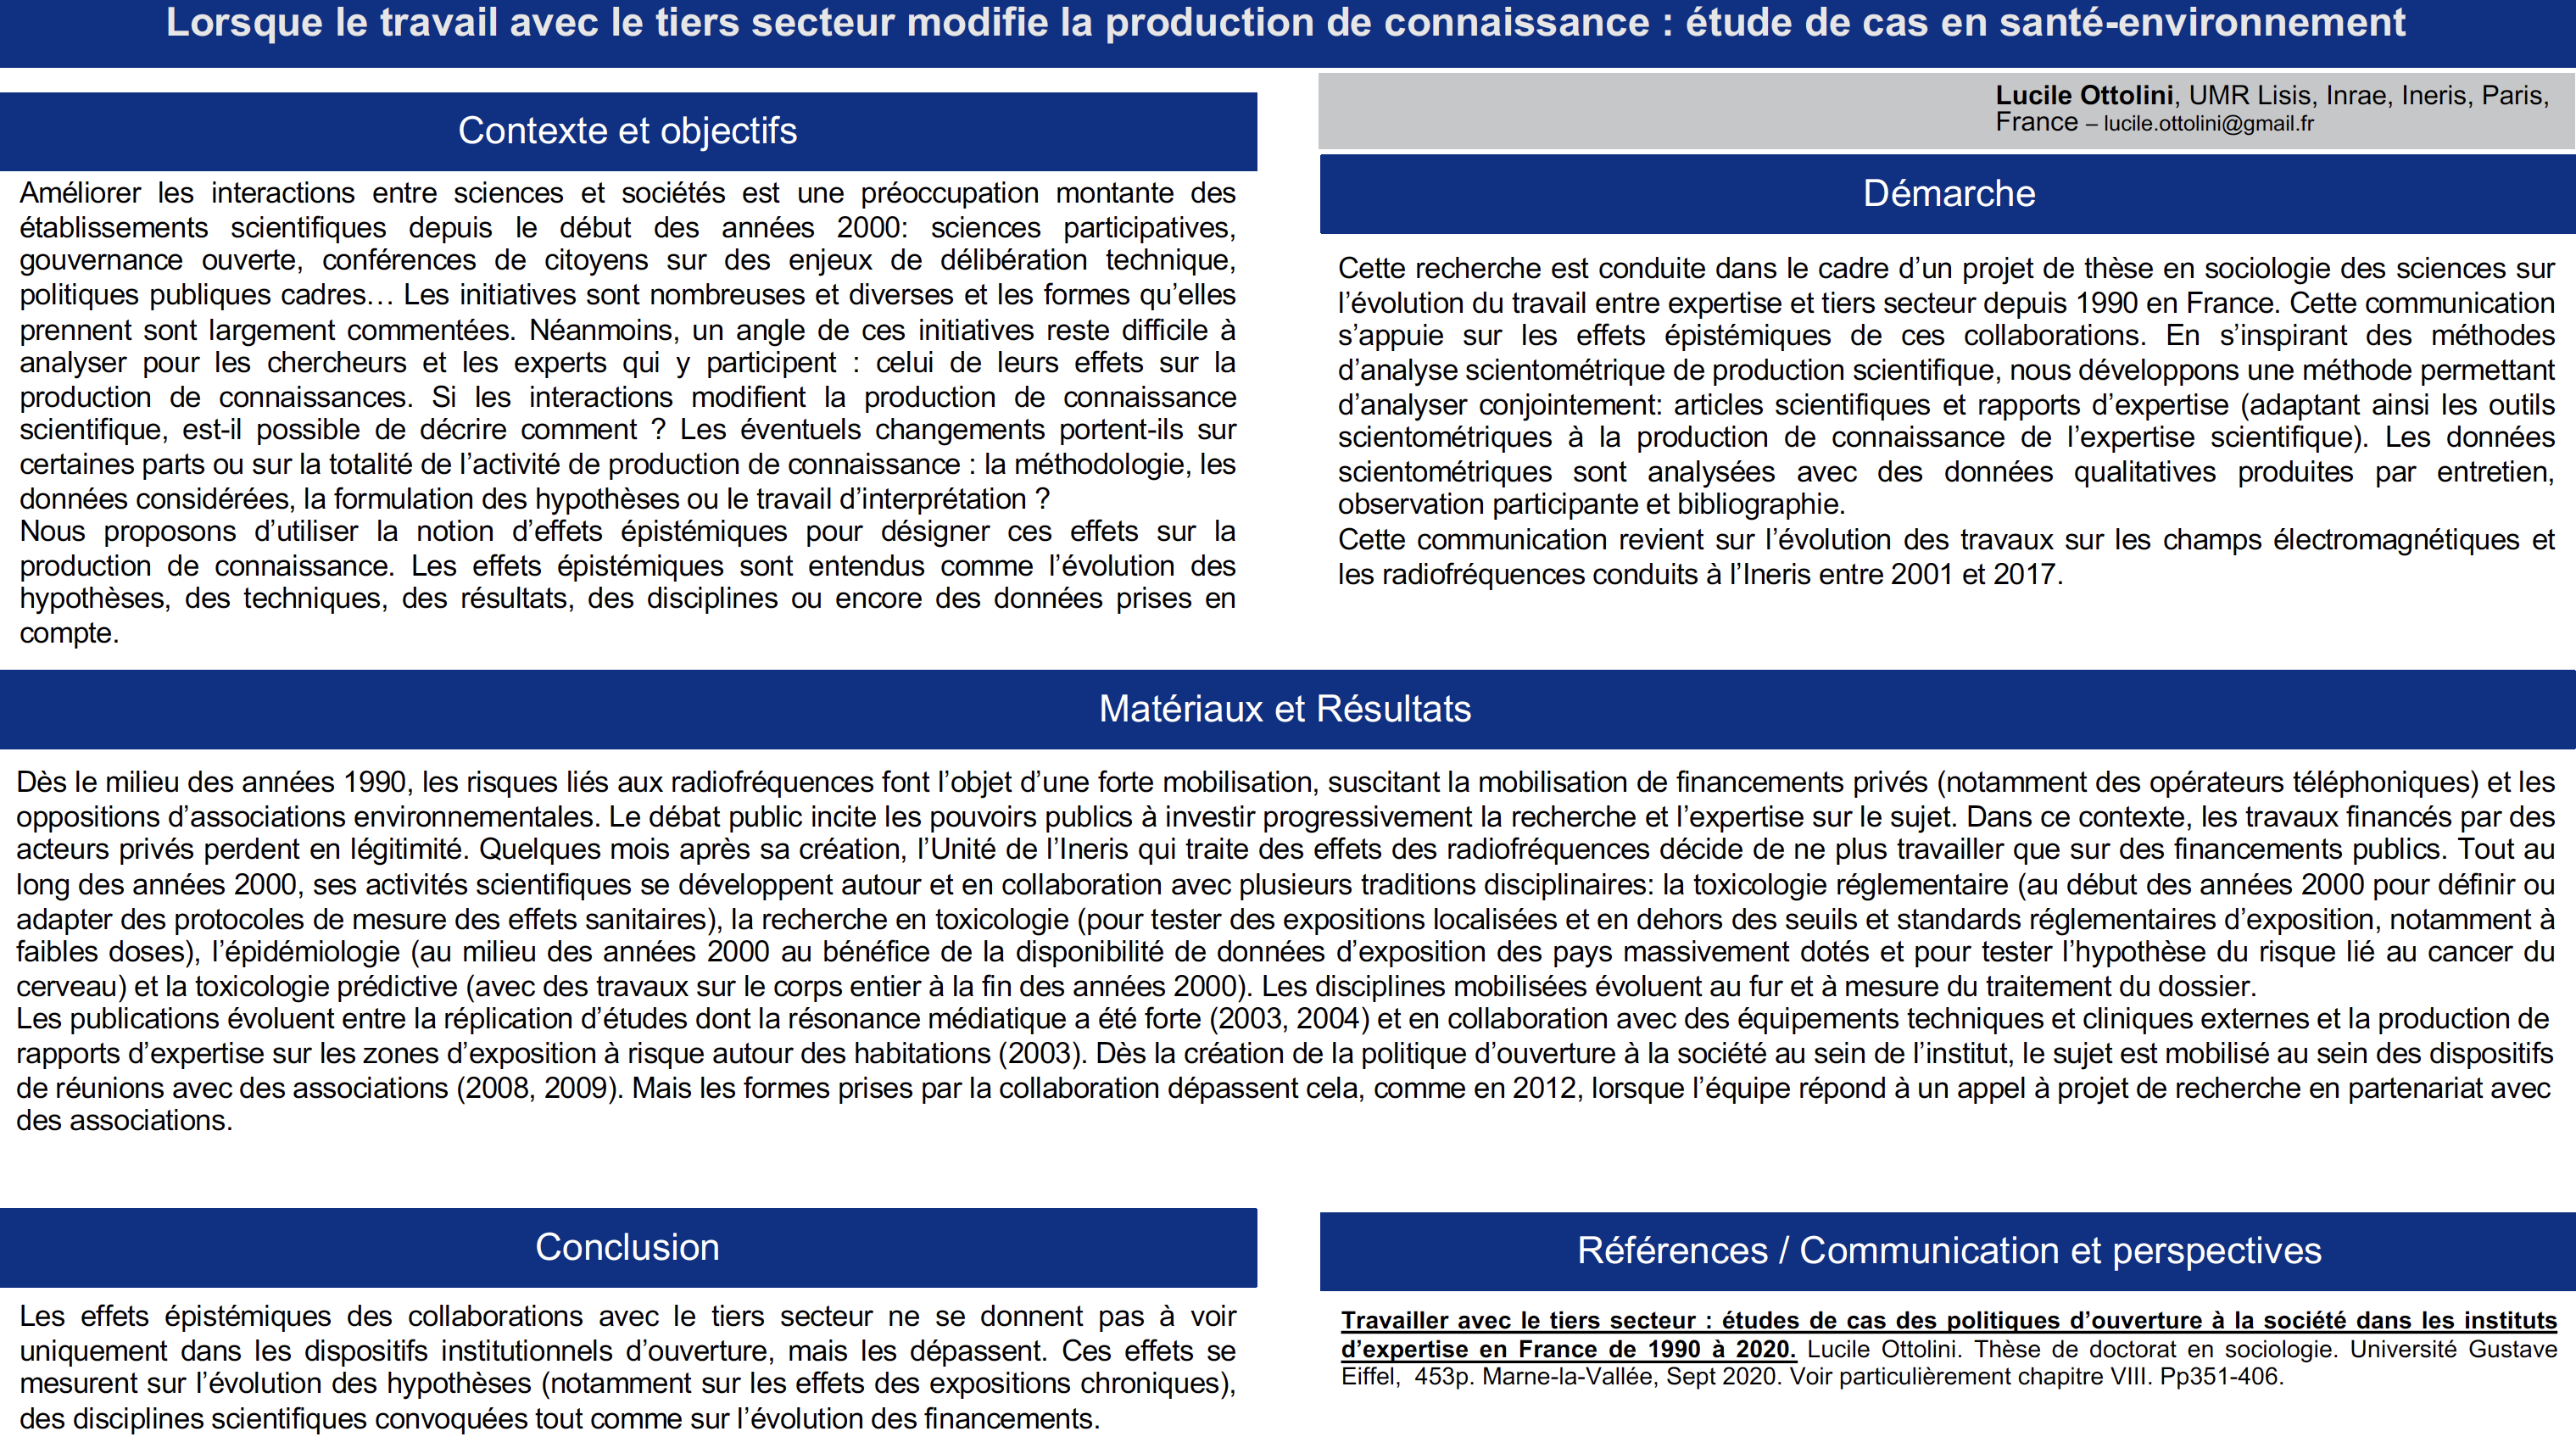 s4p7-poster-lucile-ottolini-ex0gqnzo.png